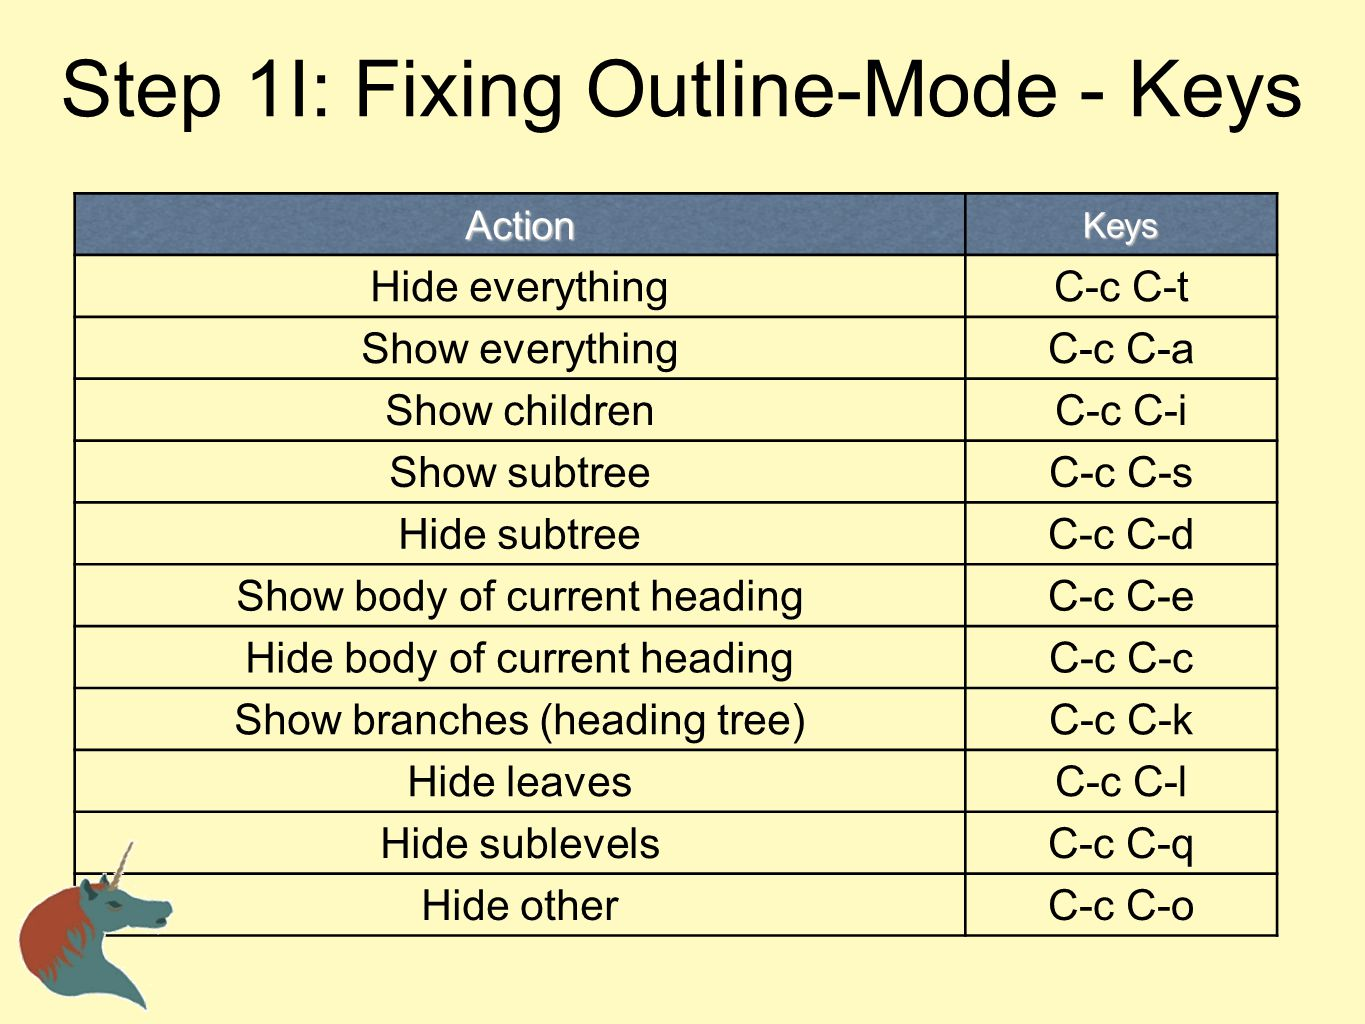 Step 1I: Fixing Outline-Mode - Keys